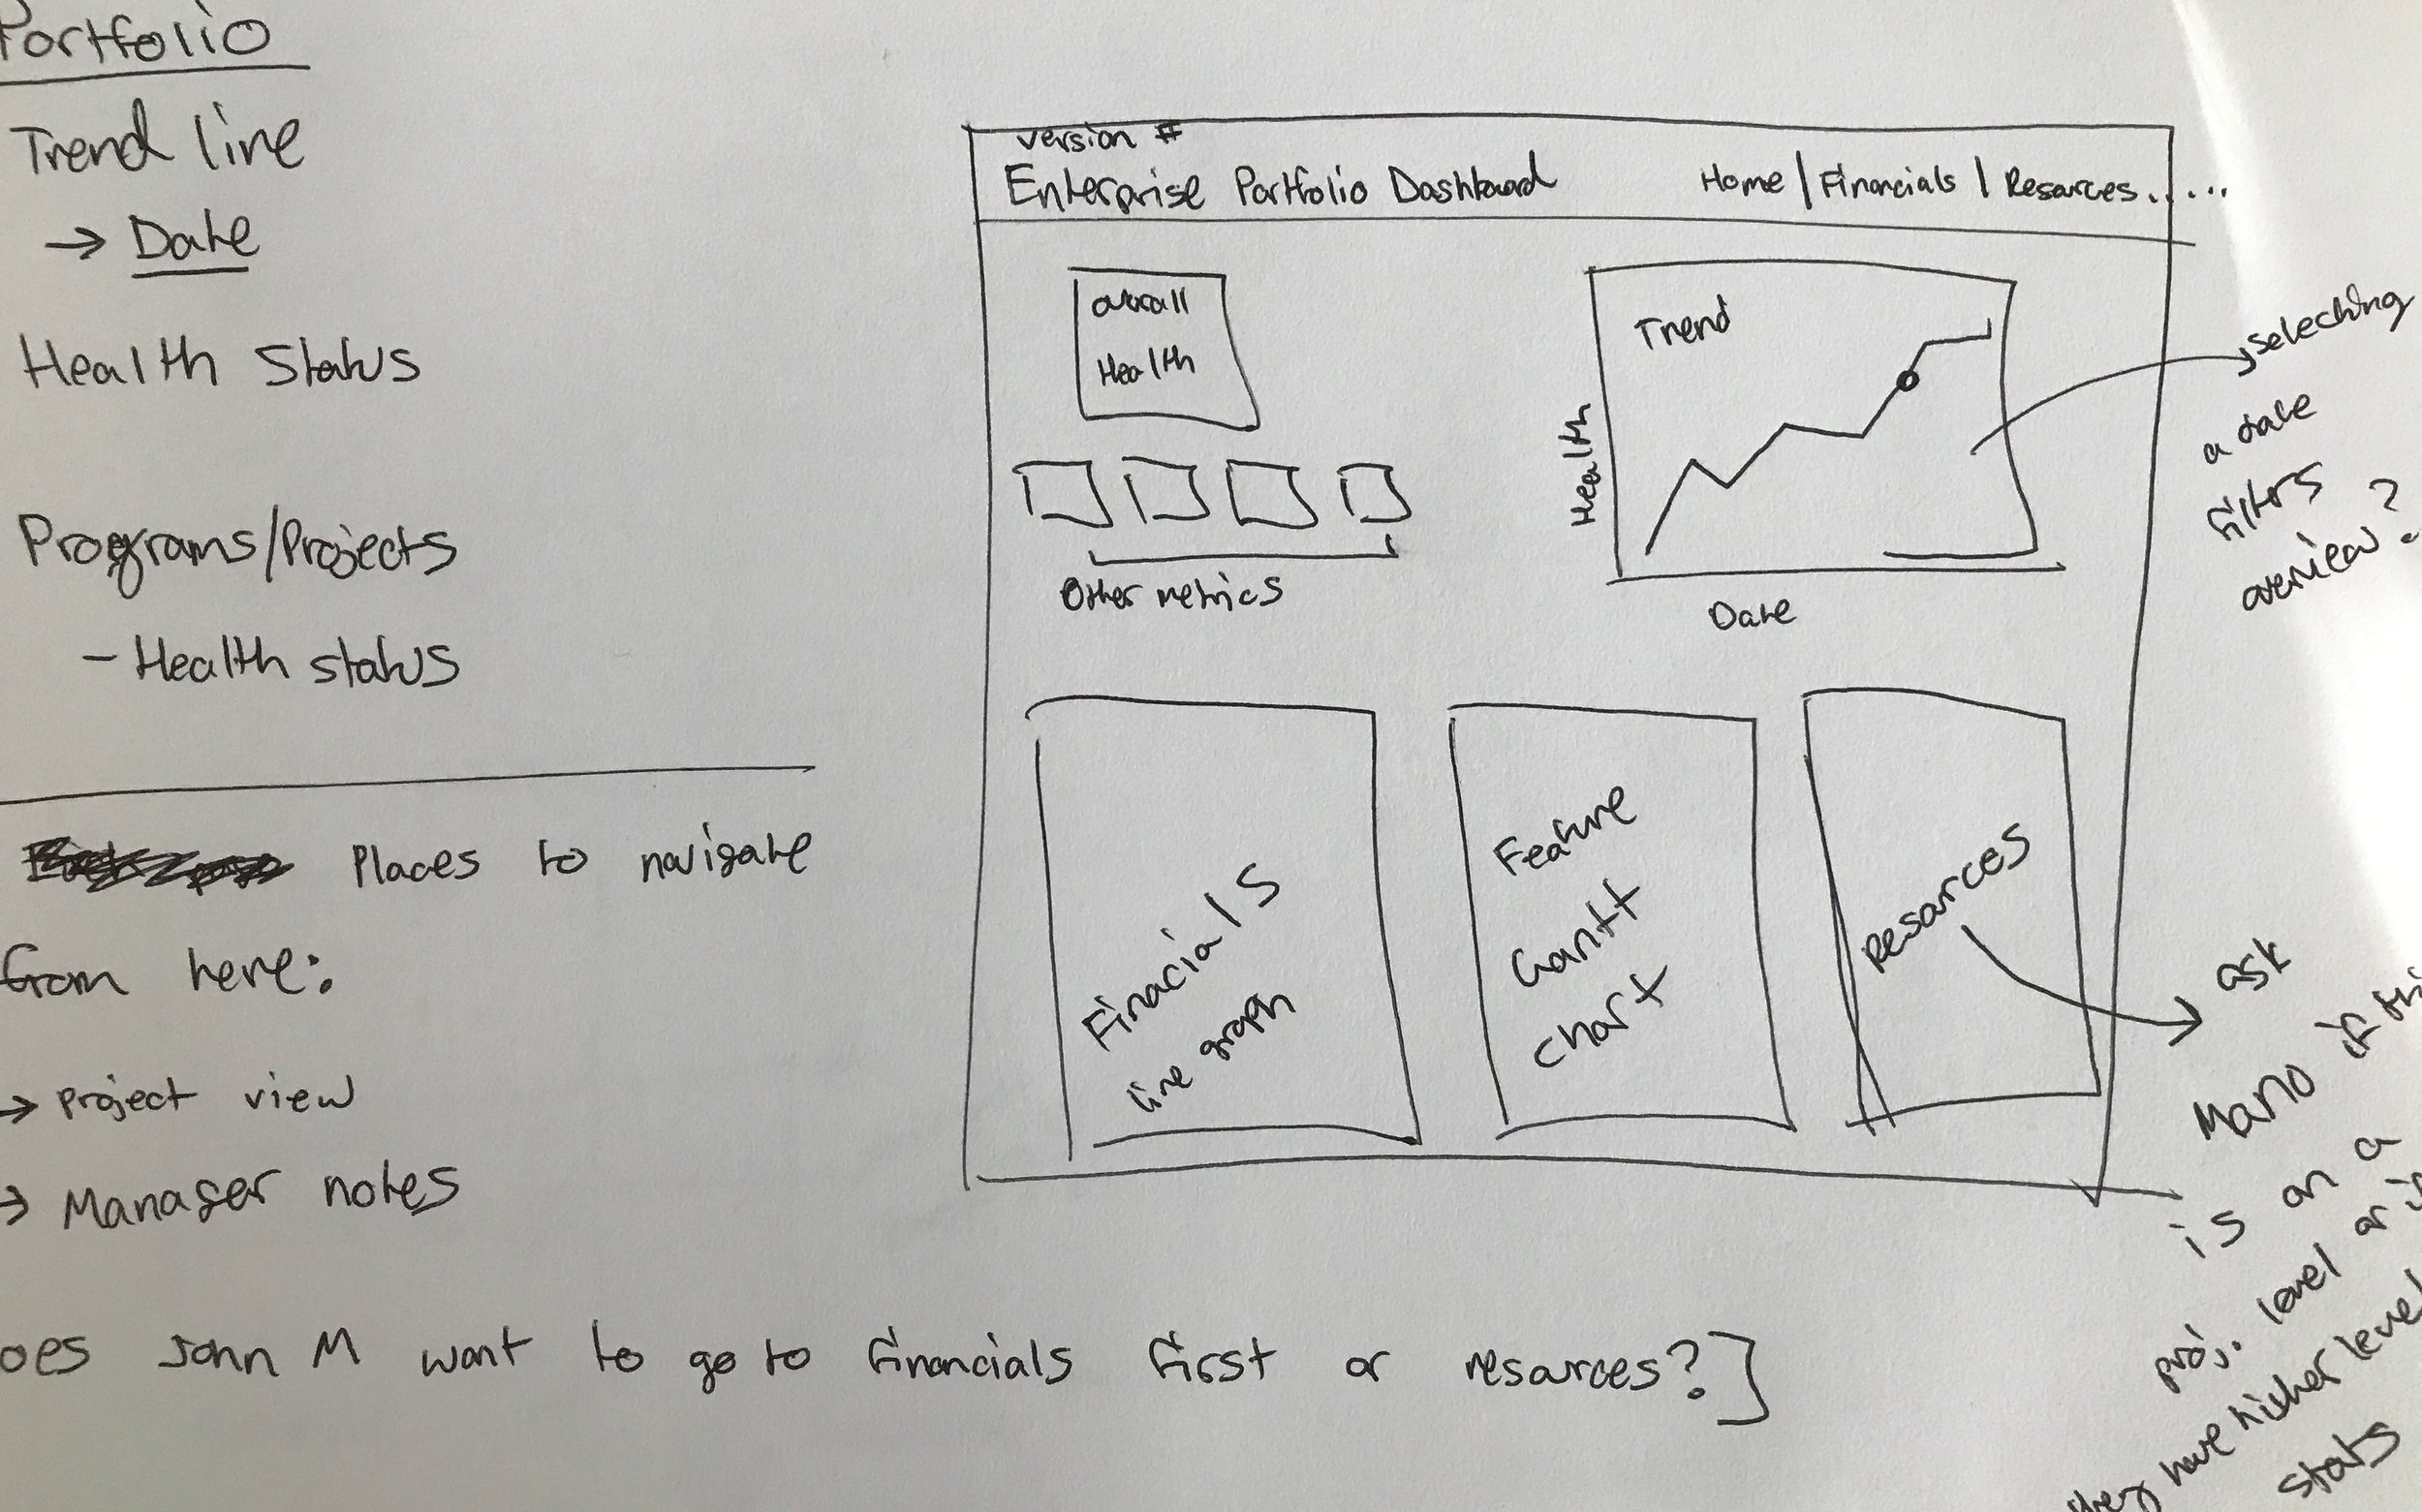 Mapping out the data visualizations on the Portfolio page